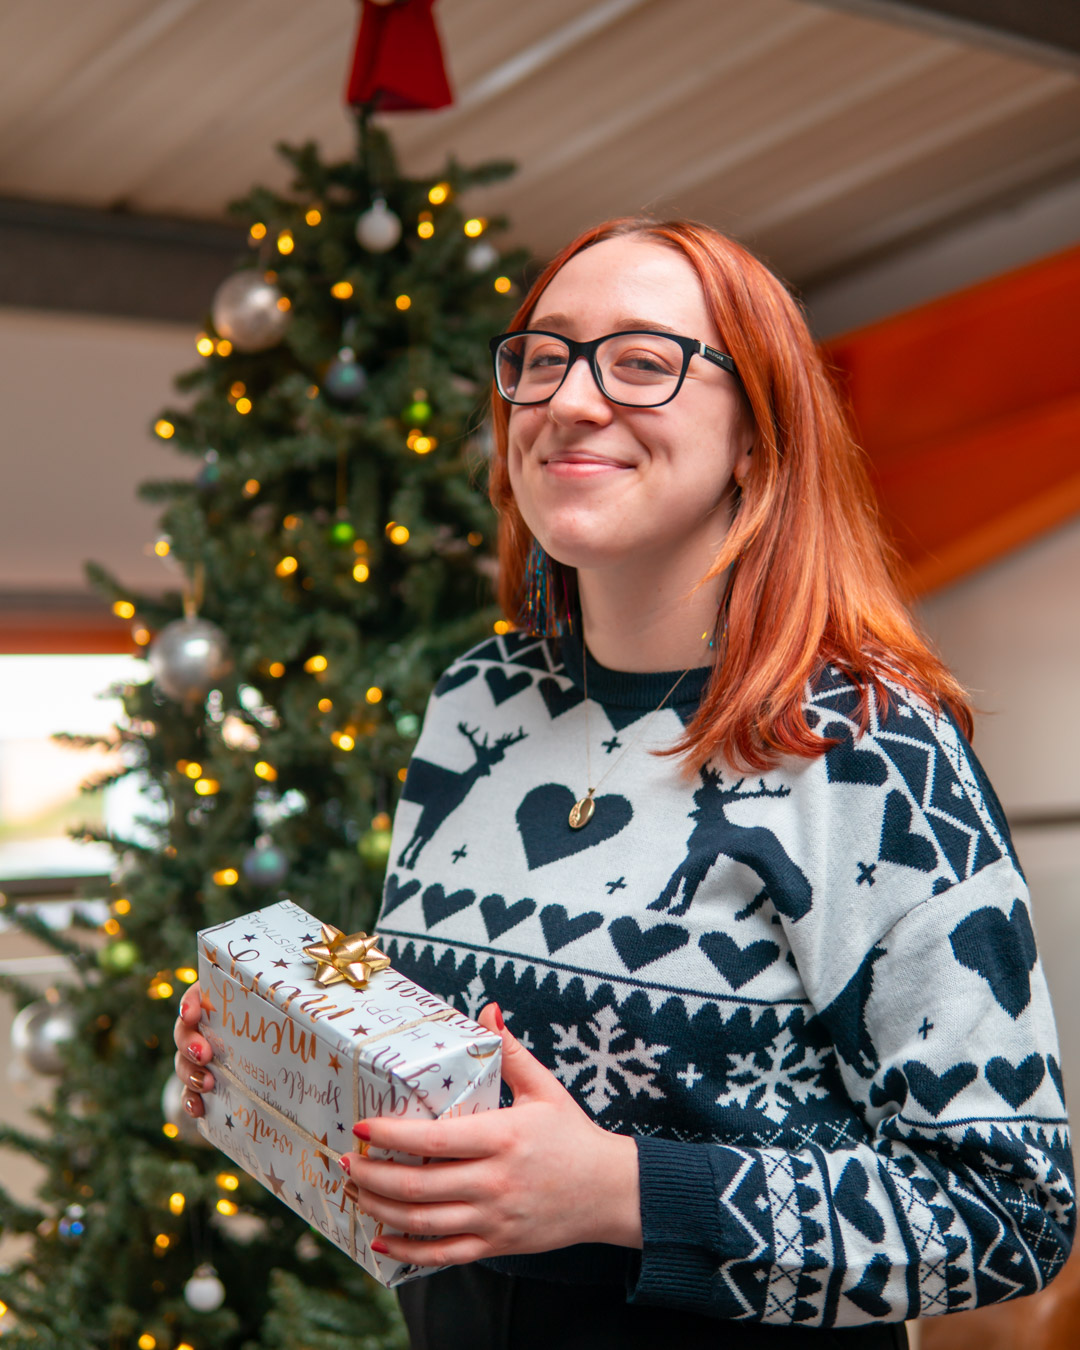 Christmas Jumper Day 2020: Grace wearing Christmas jumper holding a present.